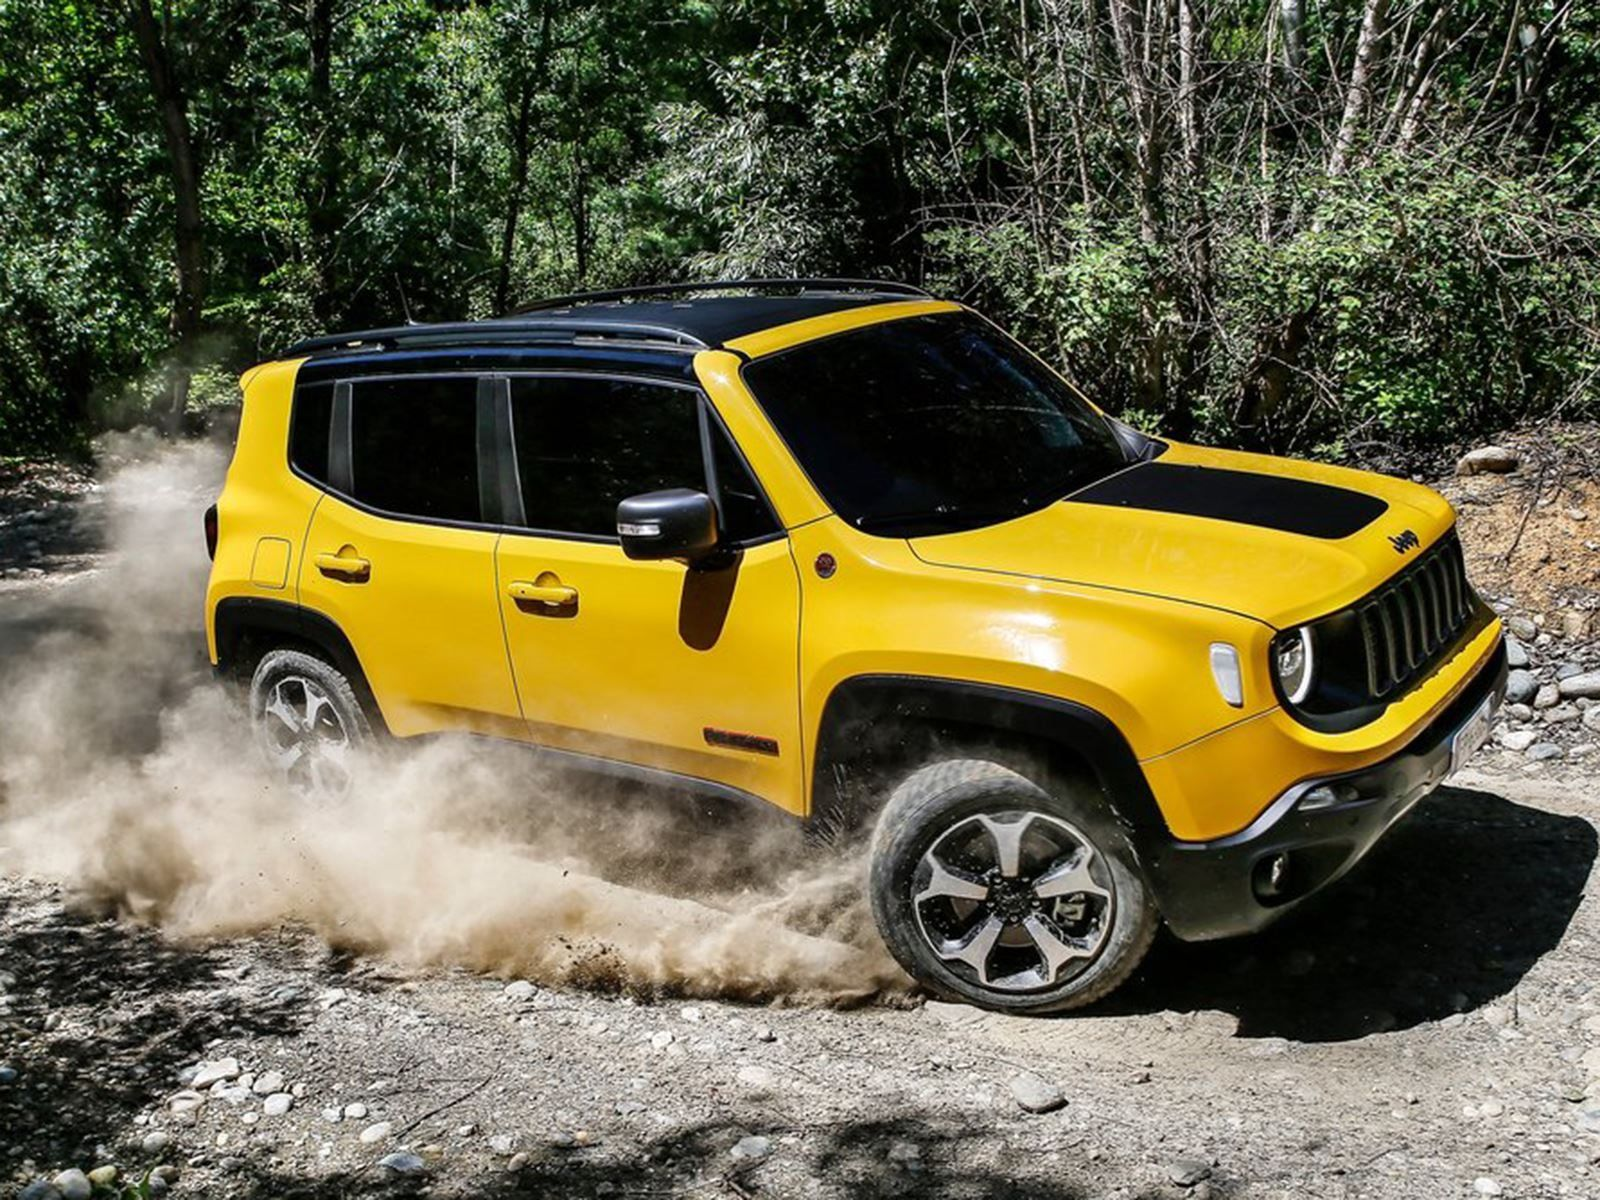 2019 Jeep Renegade Introduced In Europe Jeep Renegade Jeep Renegade Trailhawk Jeep